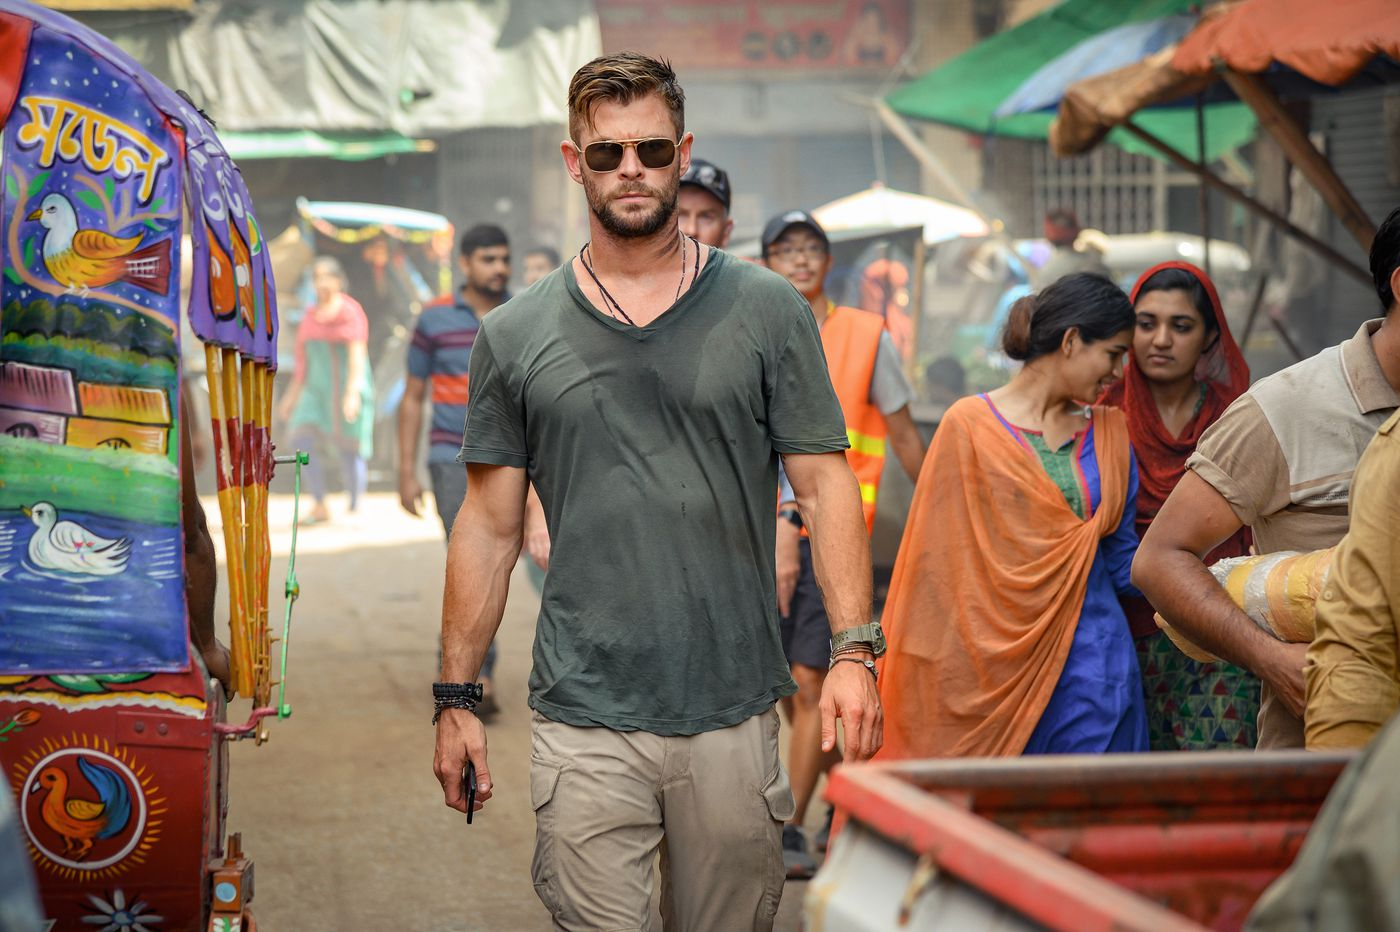 Chris Hemsworth's latest is 'Extraction' — emphasis on the 'action' — and these pecs need a rest